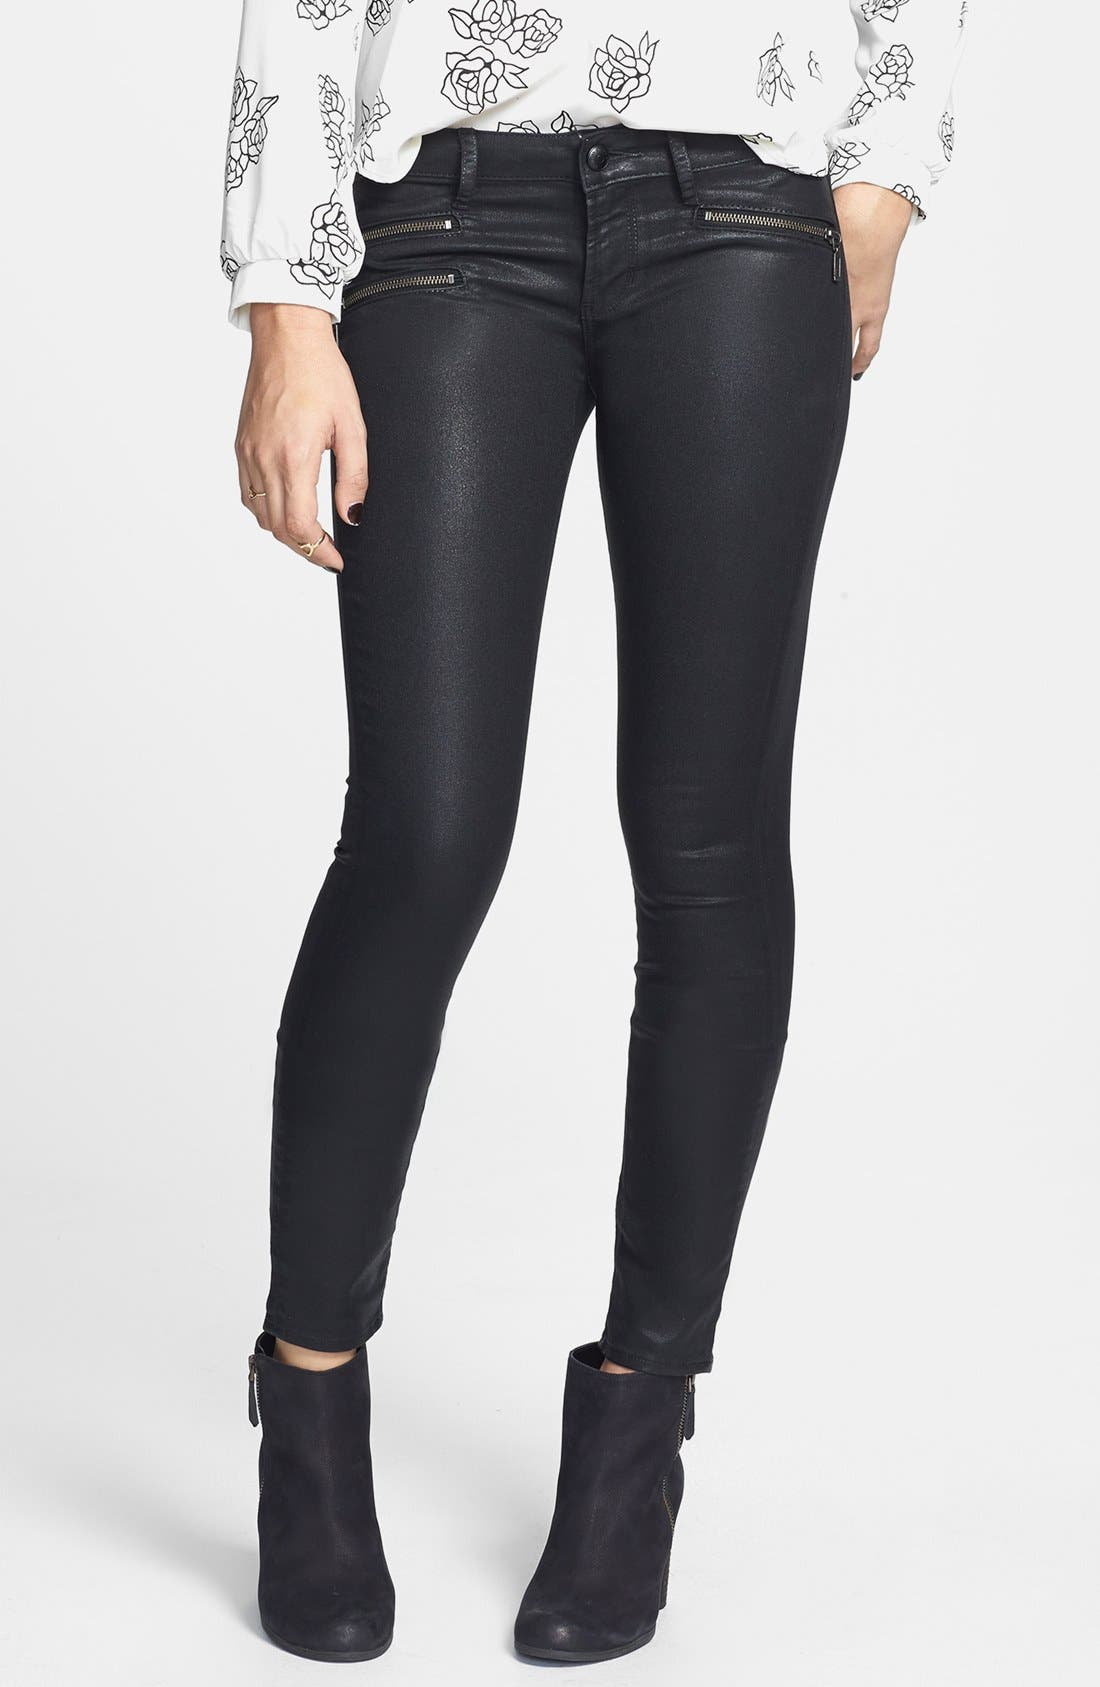 Main Image - Articles of Society 'Mya' Zipper Detail Coated Skinny Jeans (Juniors) (Online Only)